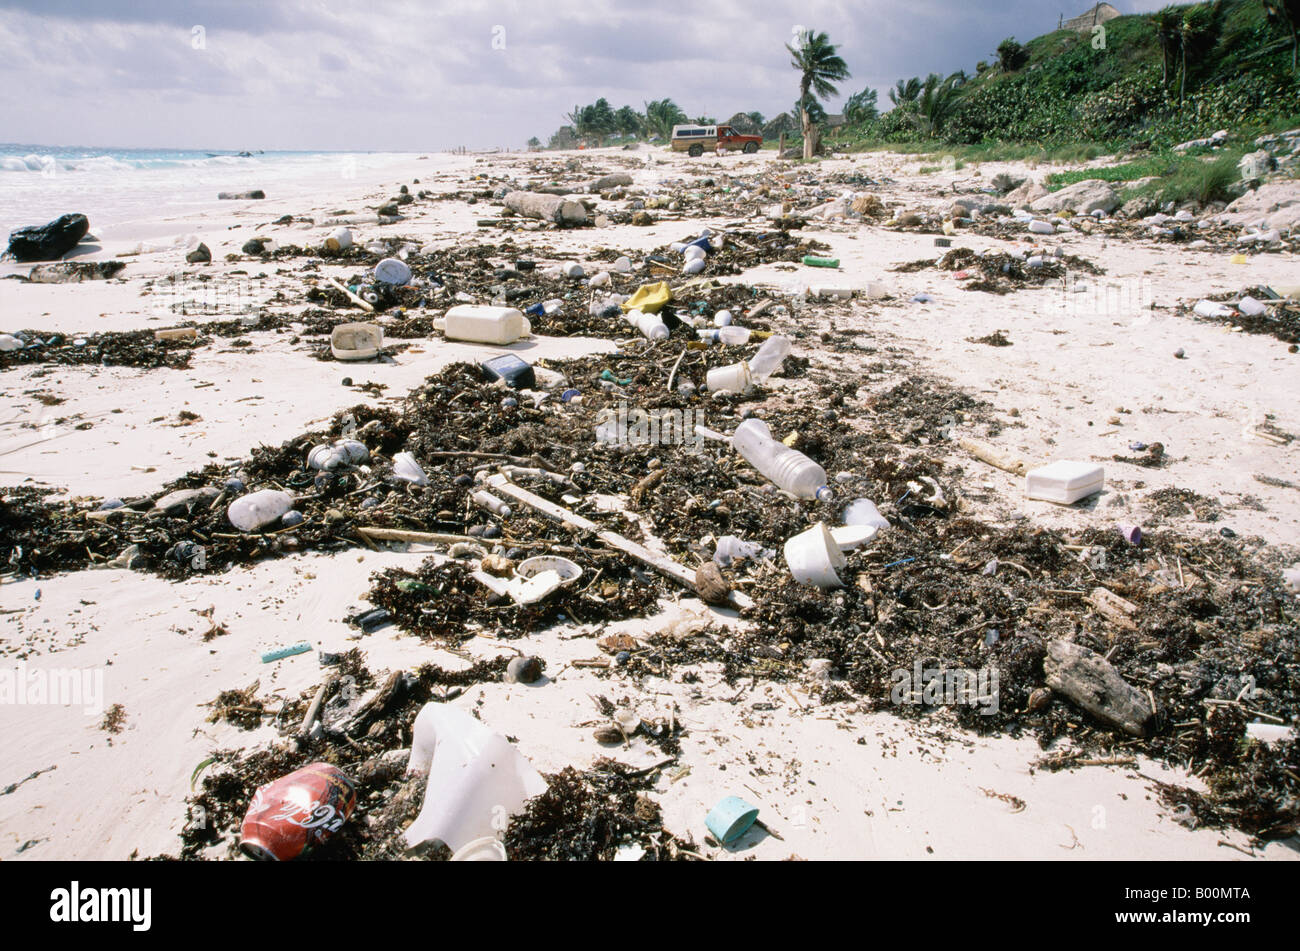 Rubbish on the beach tulum quintana roo mexico - Stock Image